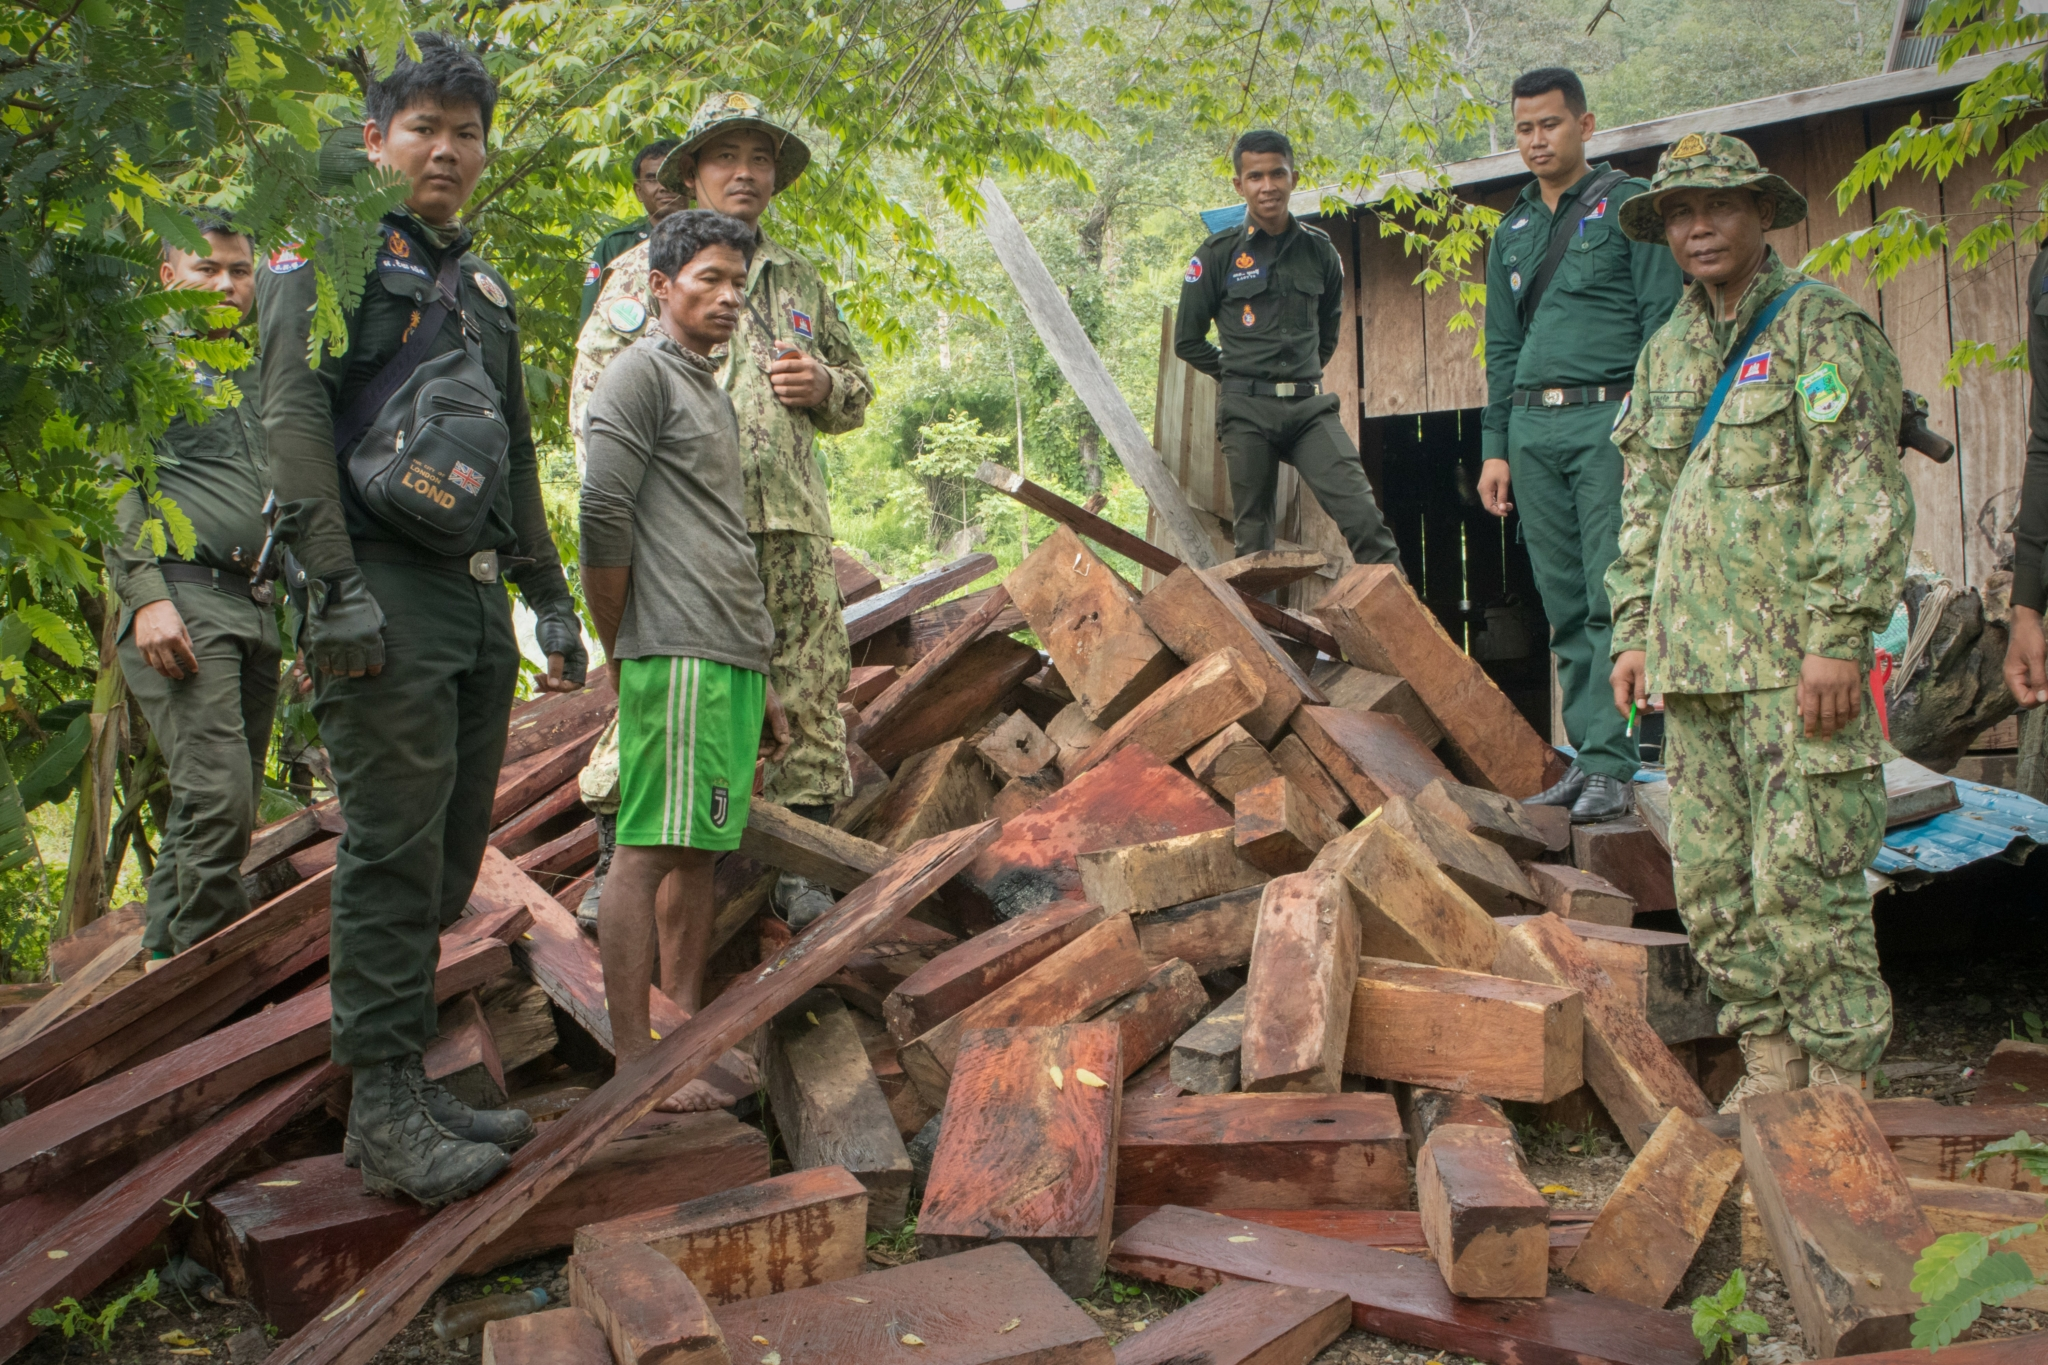 Luxury timber Dealer detained